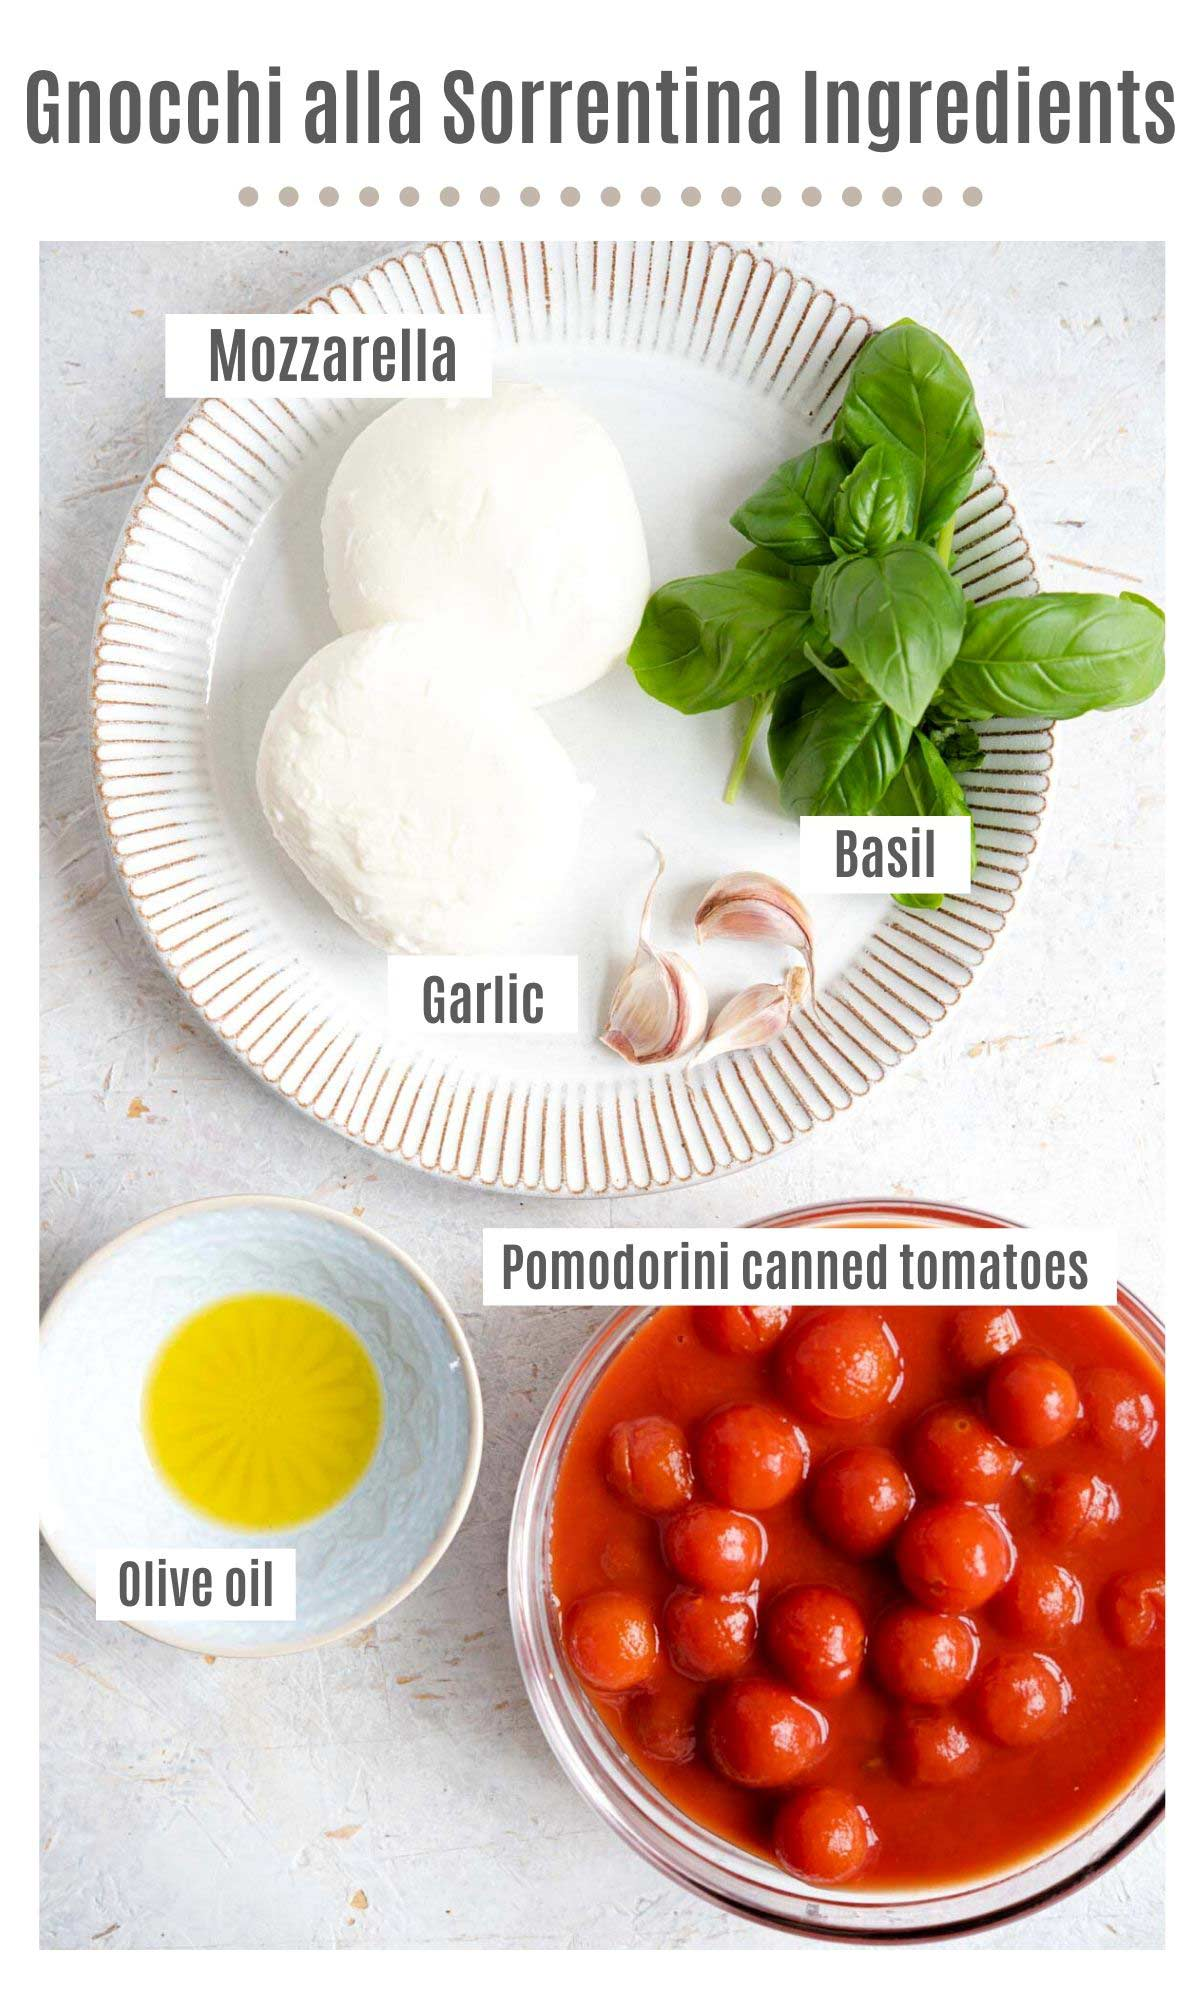 An overhead shot of all the ingredients needed to make gnocchi alla sorrentina